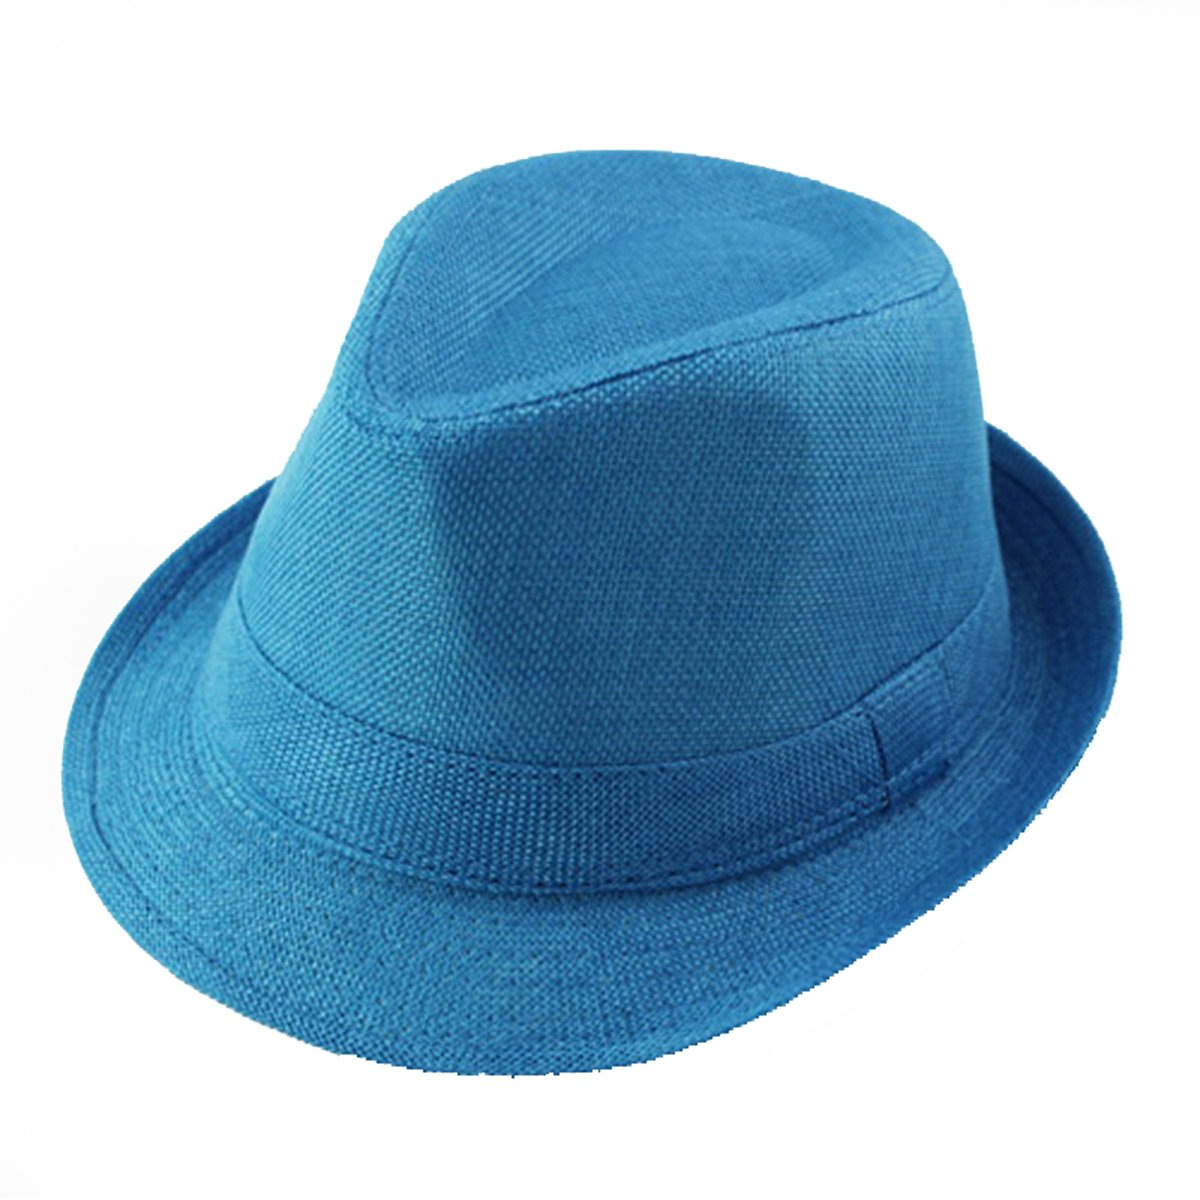 ECYC Children Jazz Hats Kids Solid Color Linen Fedoras Cap 12132